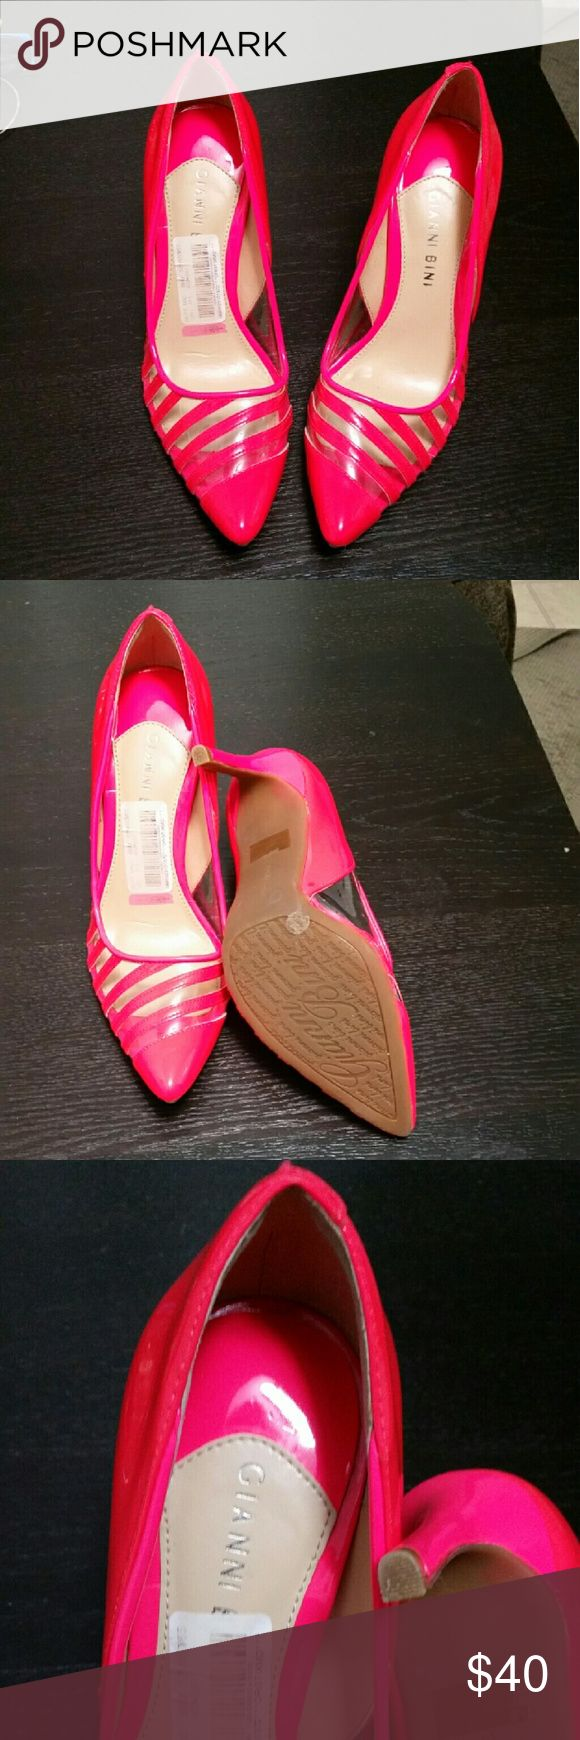 Gorgeous Gianni Bini coral pumps. Sale!! These heels are super cute and sexy.  Size says 7 1/2 but will fit a size 7 as it runs small. Gianni Bini Shoes Heels